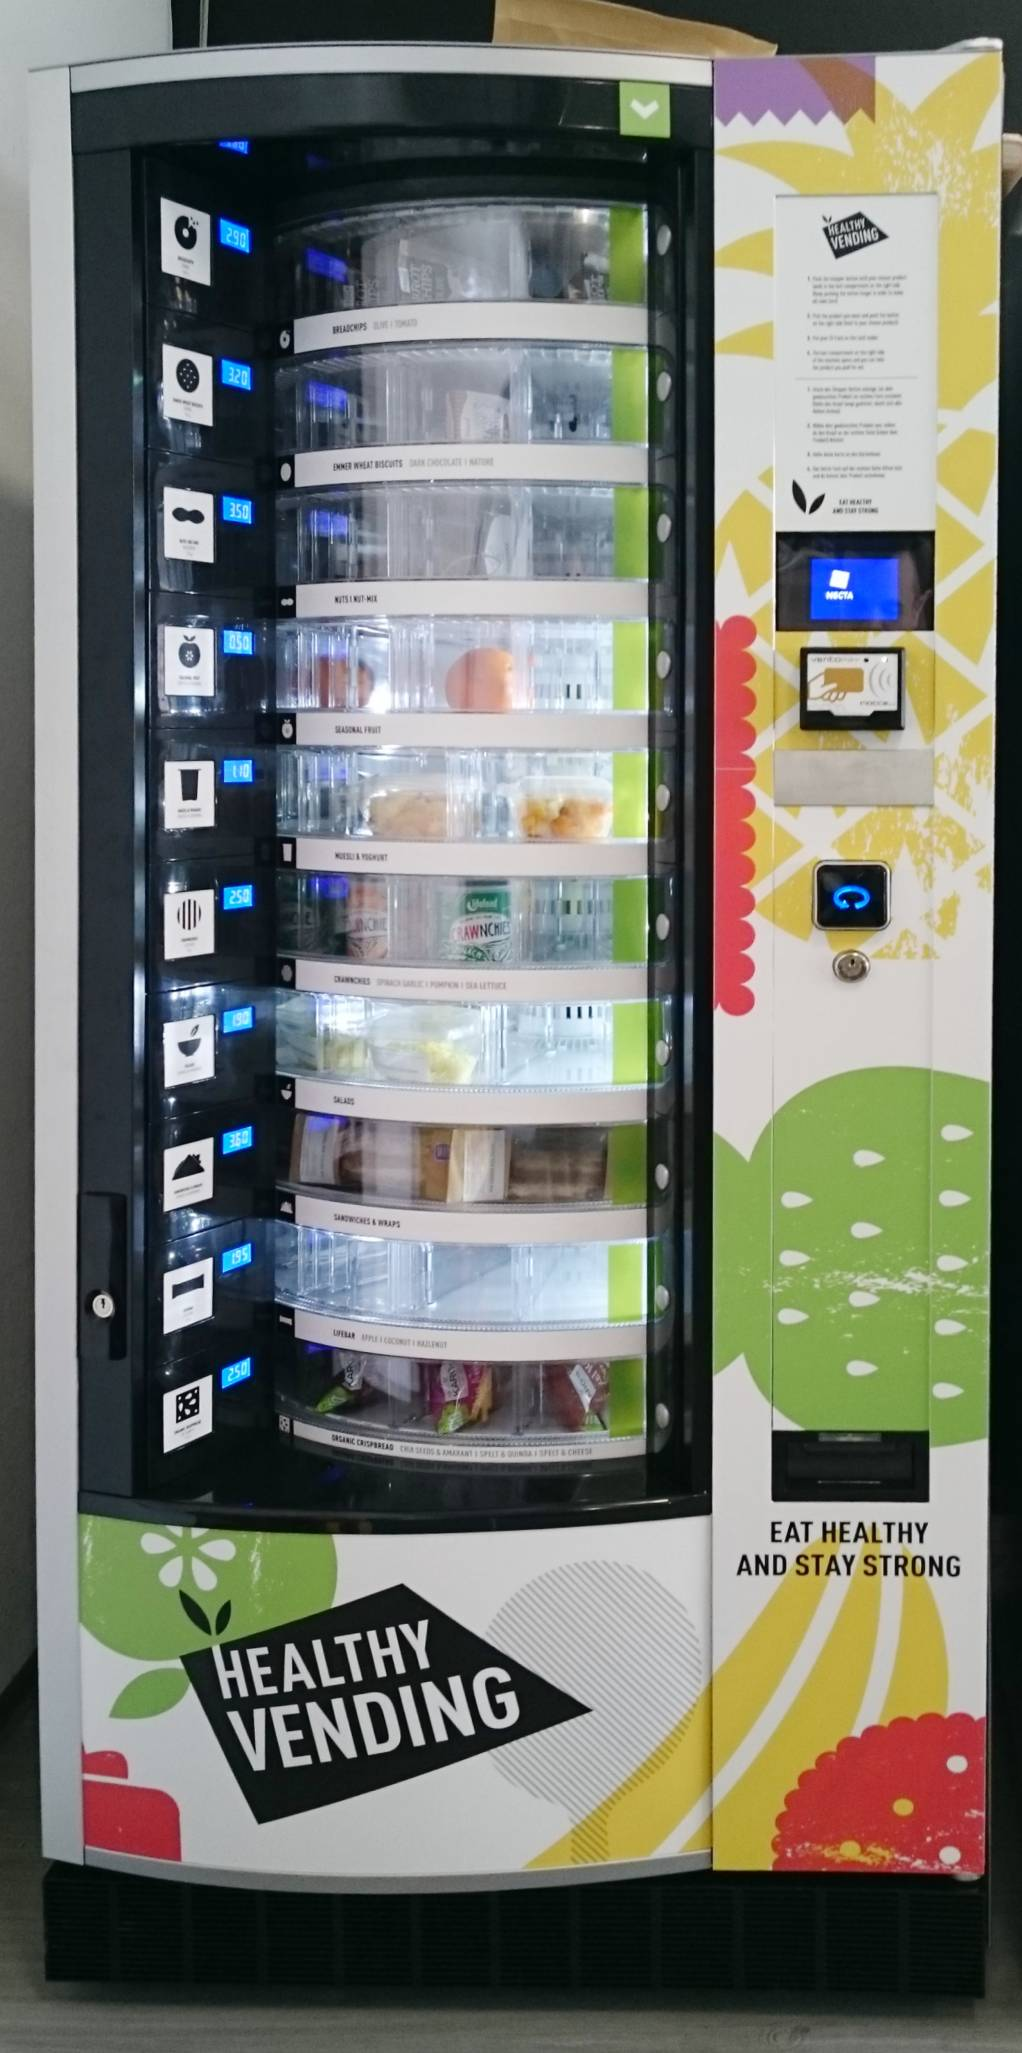 Vending-machine-snack-automat